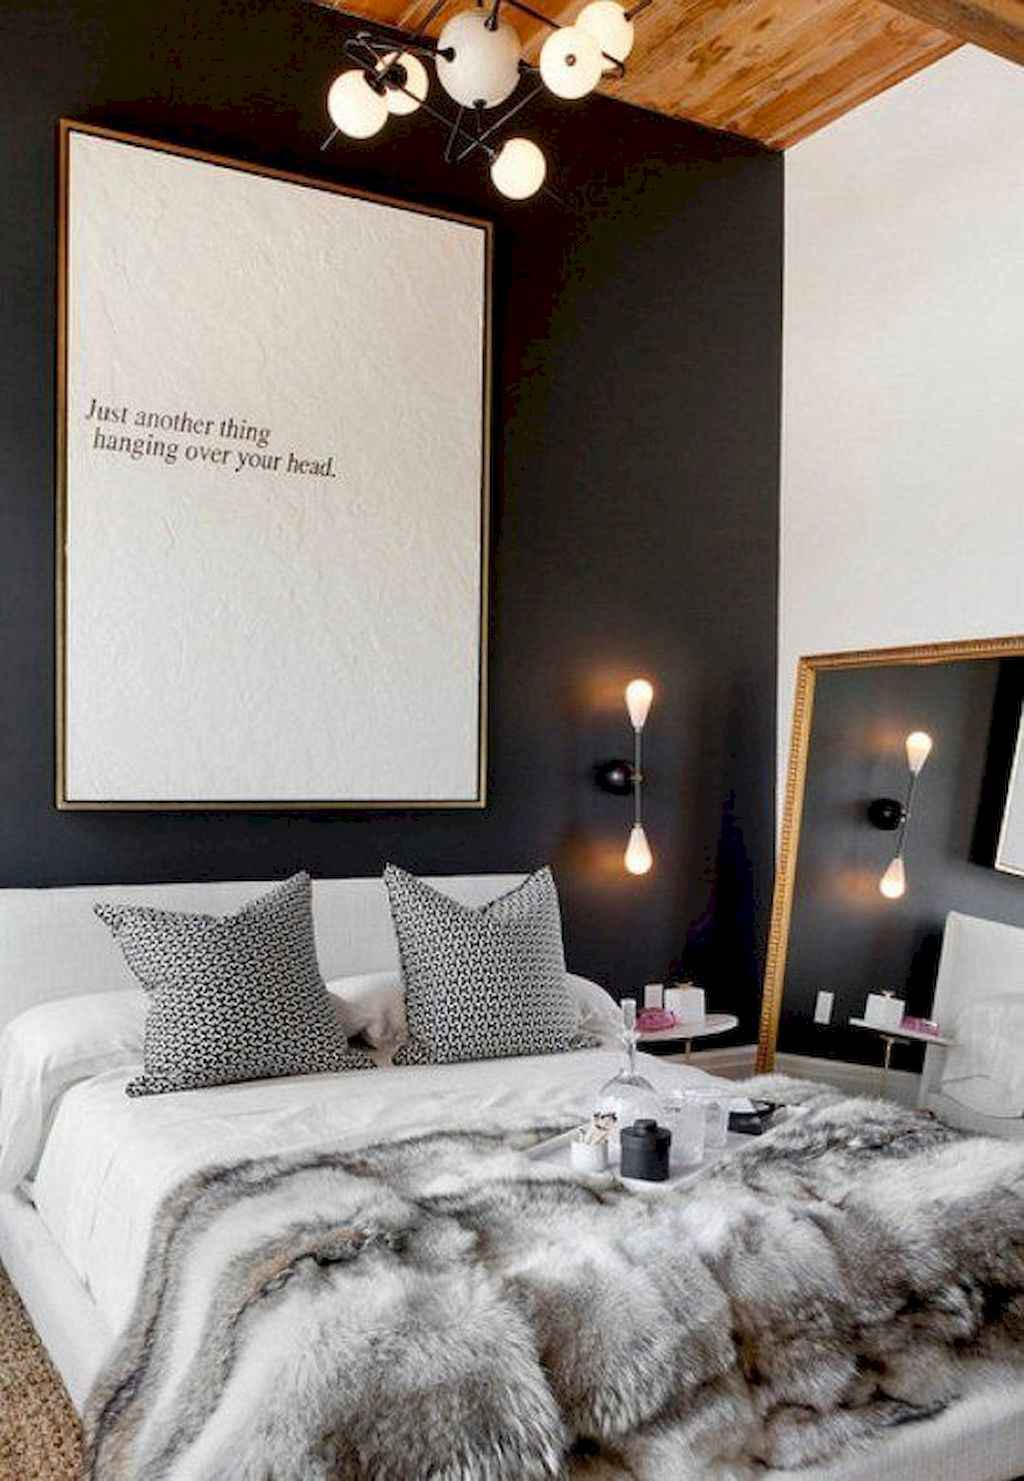 Cozy apartment decorating ideas on a budget (4)